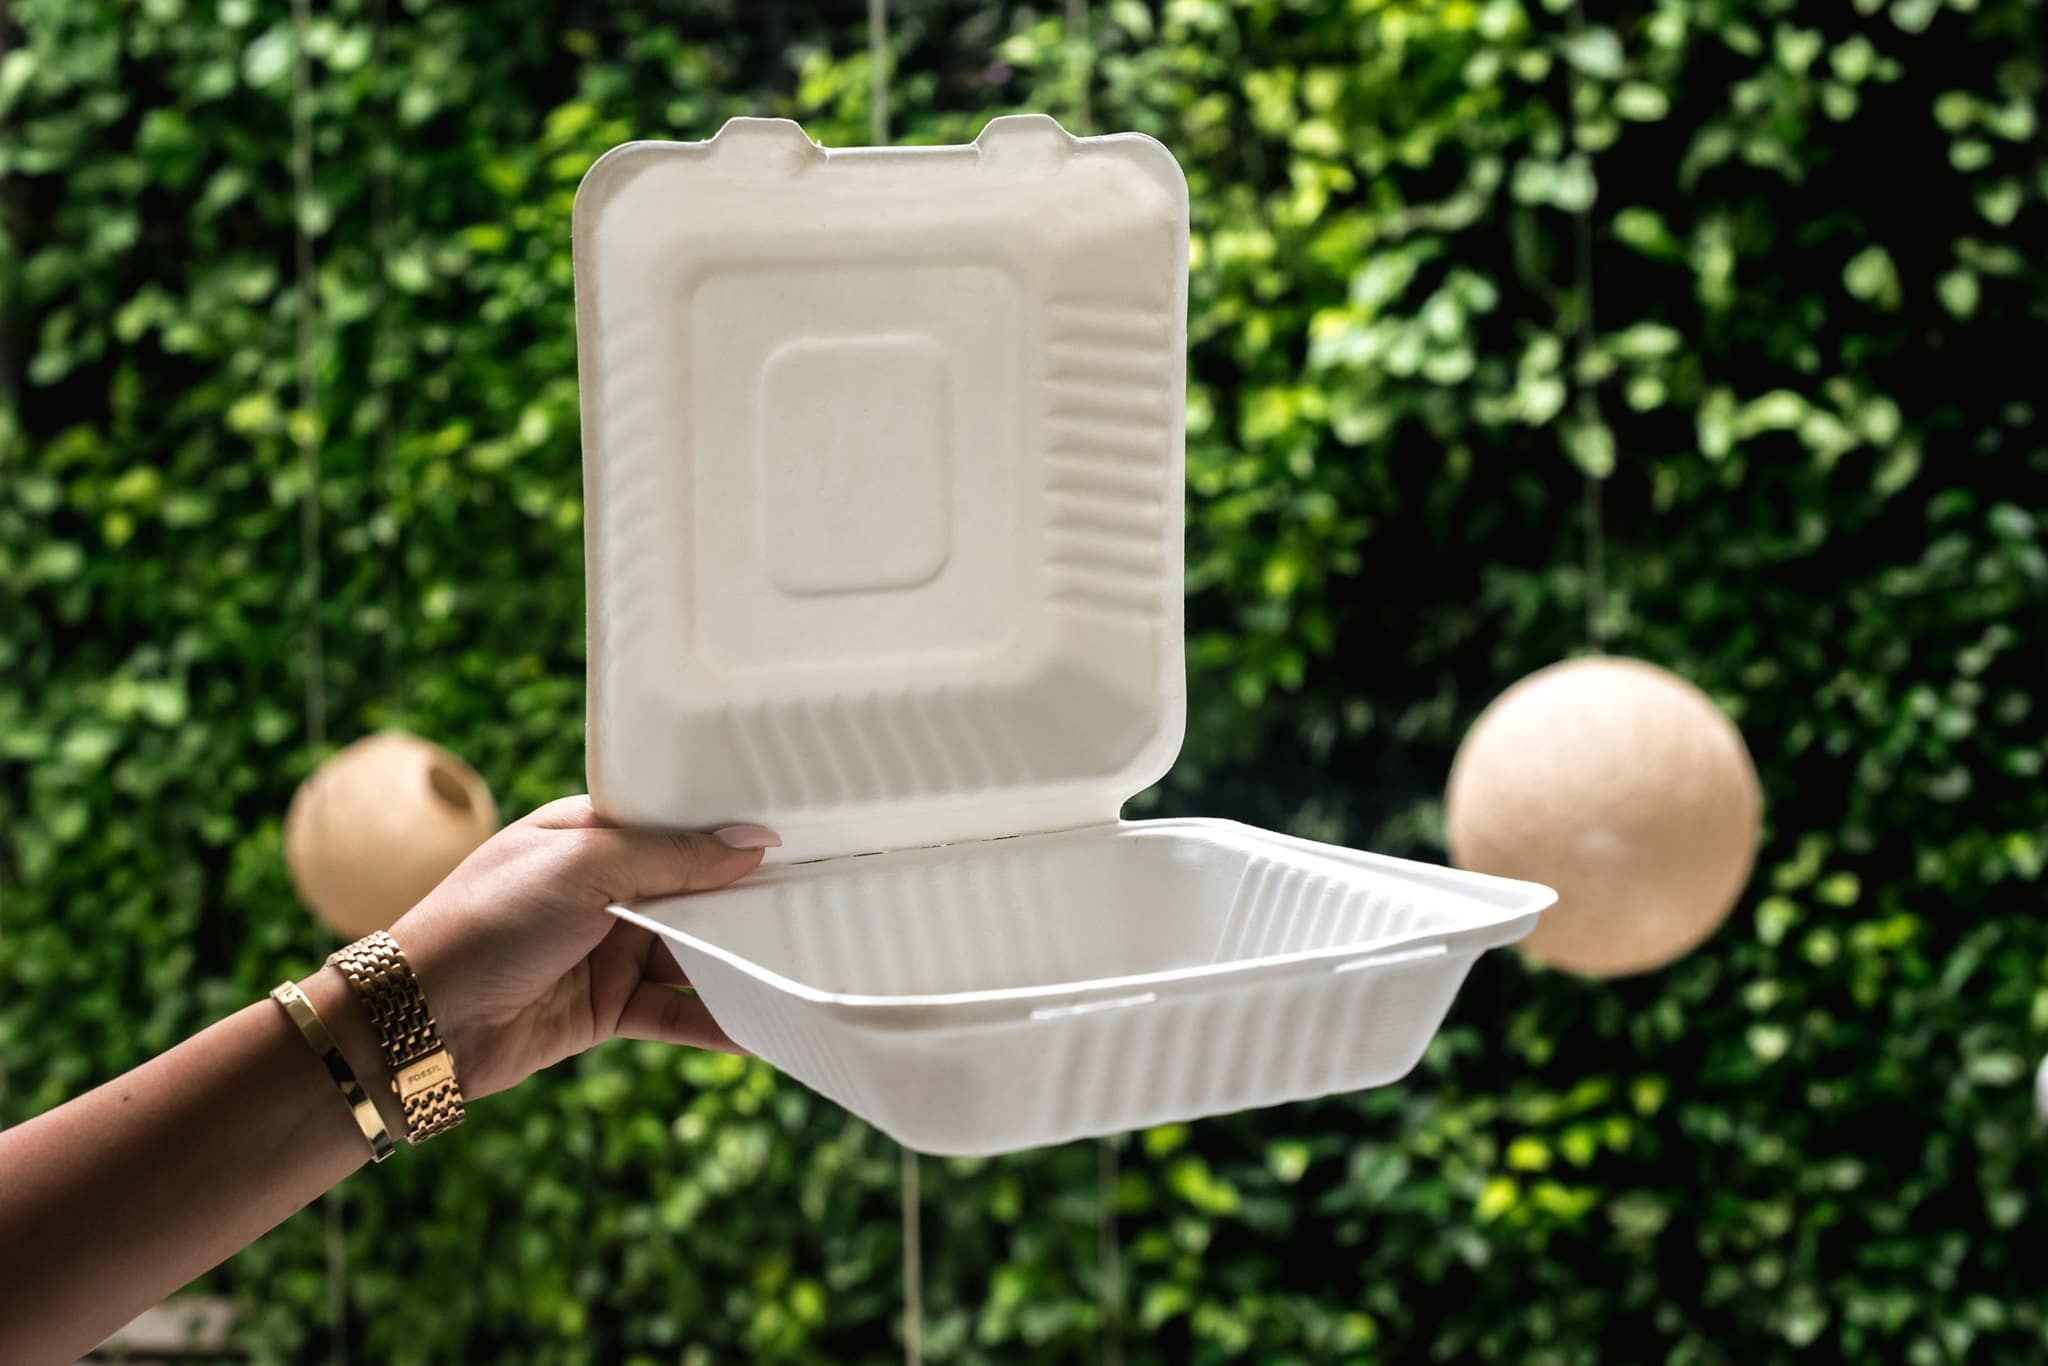 Tantalo Kitchen uses biodegradable containers for delivery